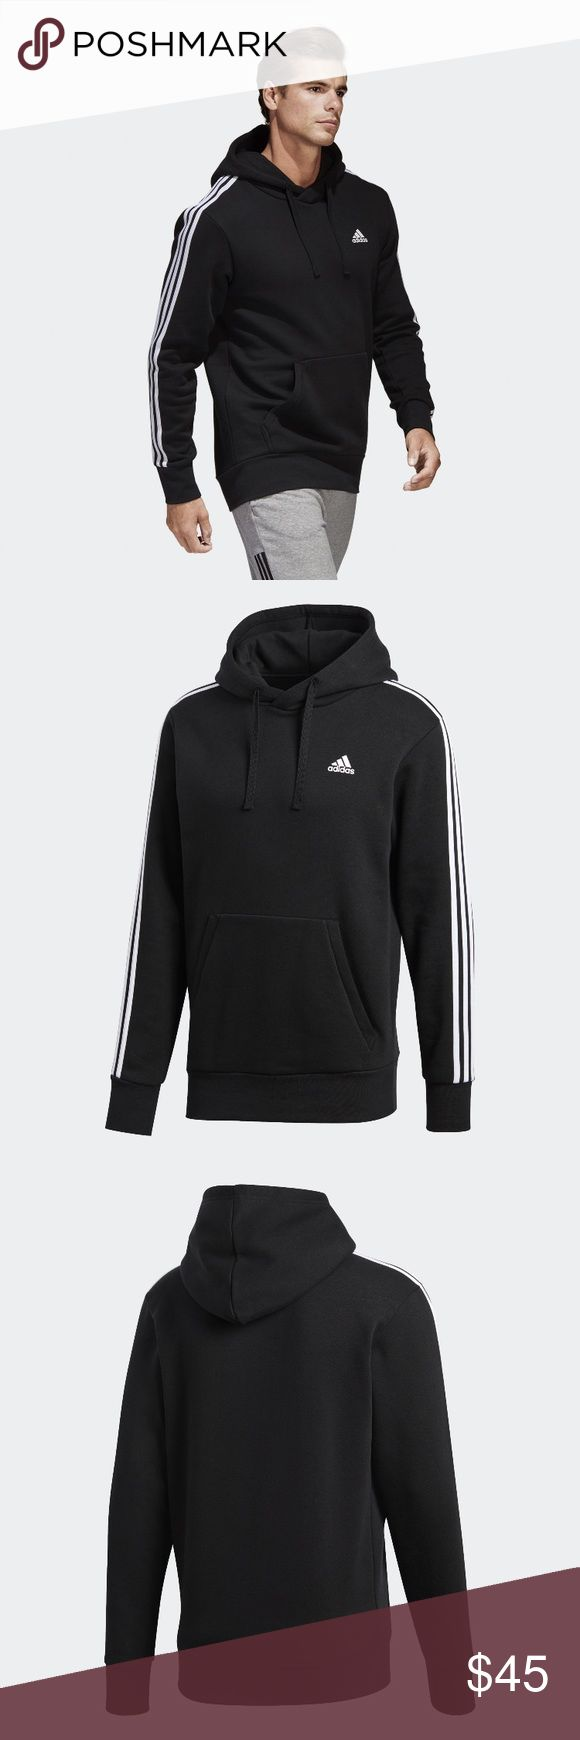 NWT S Men's Adidas Hoodie Fits women's s/m oversized. Brand new with tags. Still in packaging no flaws adidas Sweaters